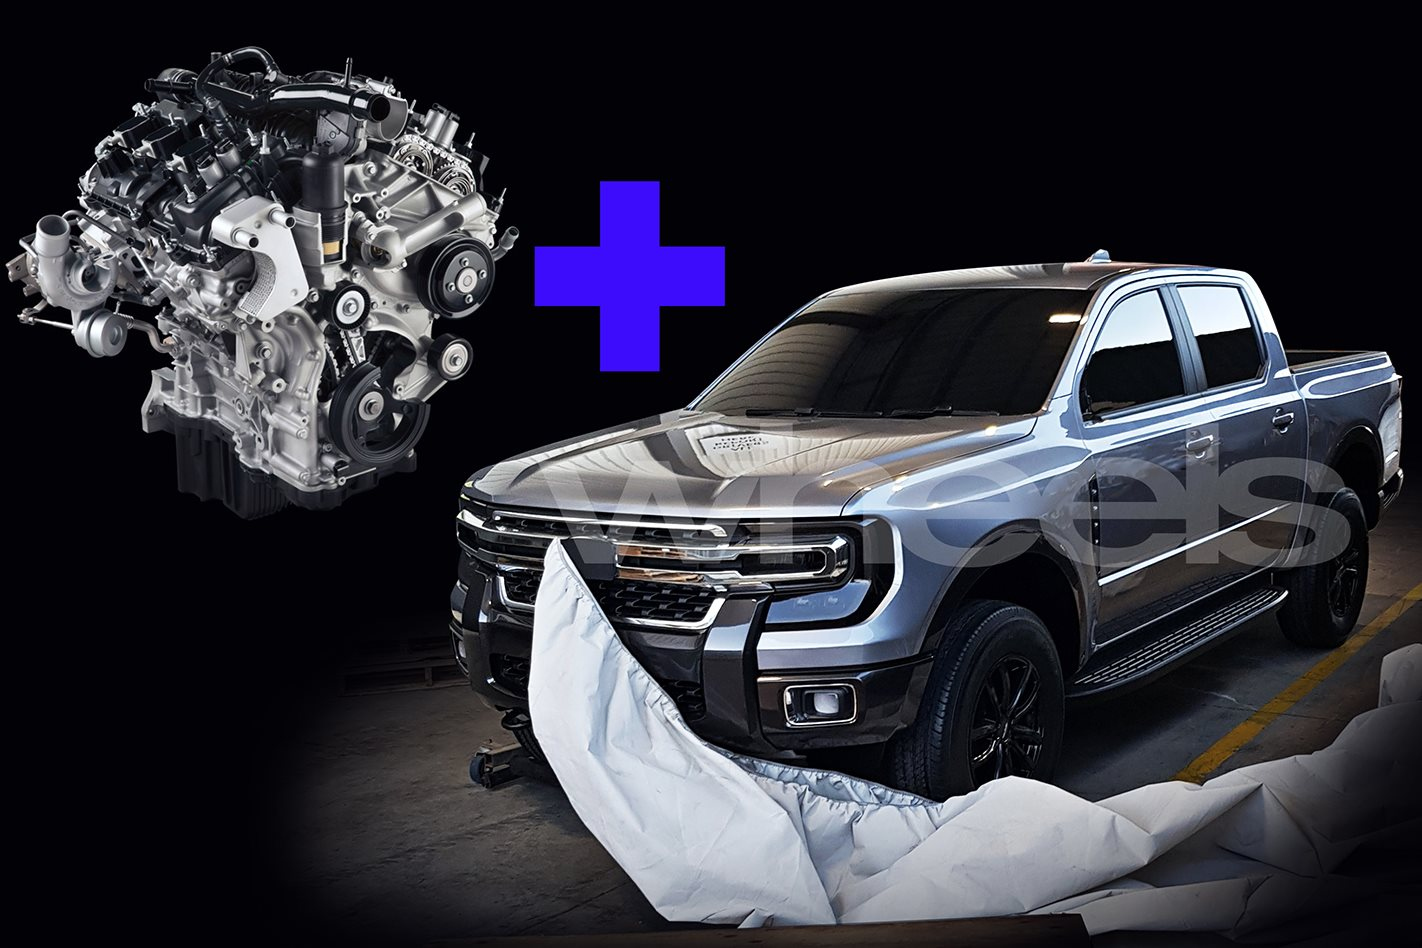 2021 Ford Ranger Engine Details Revealed